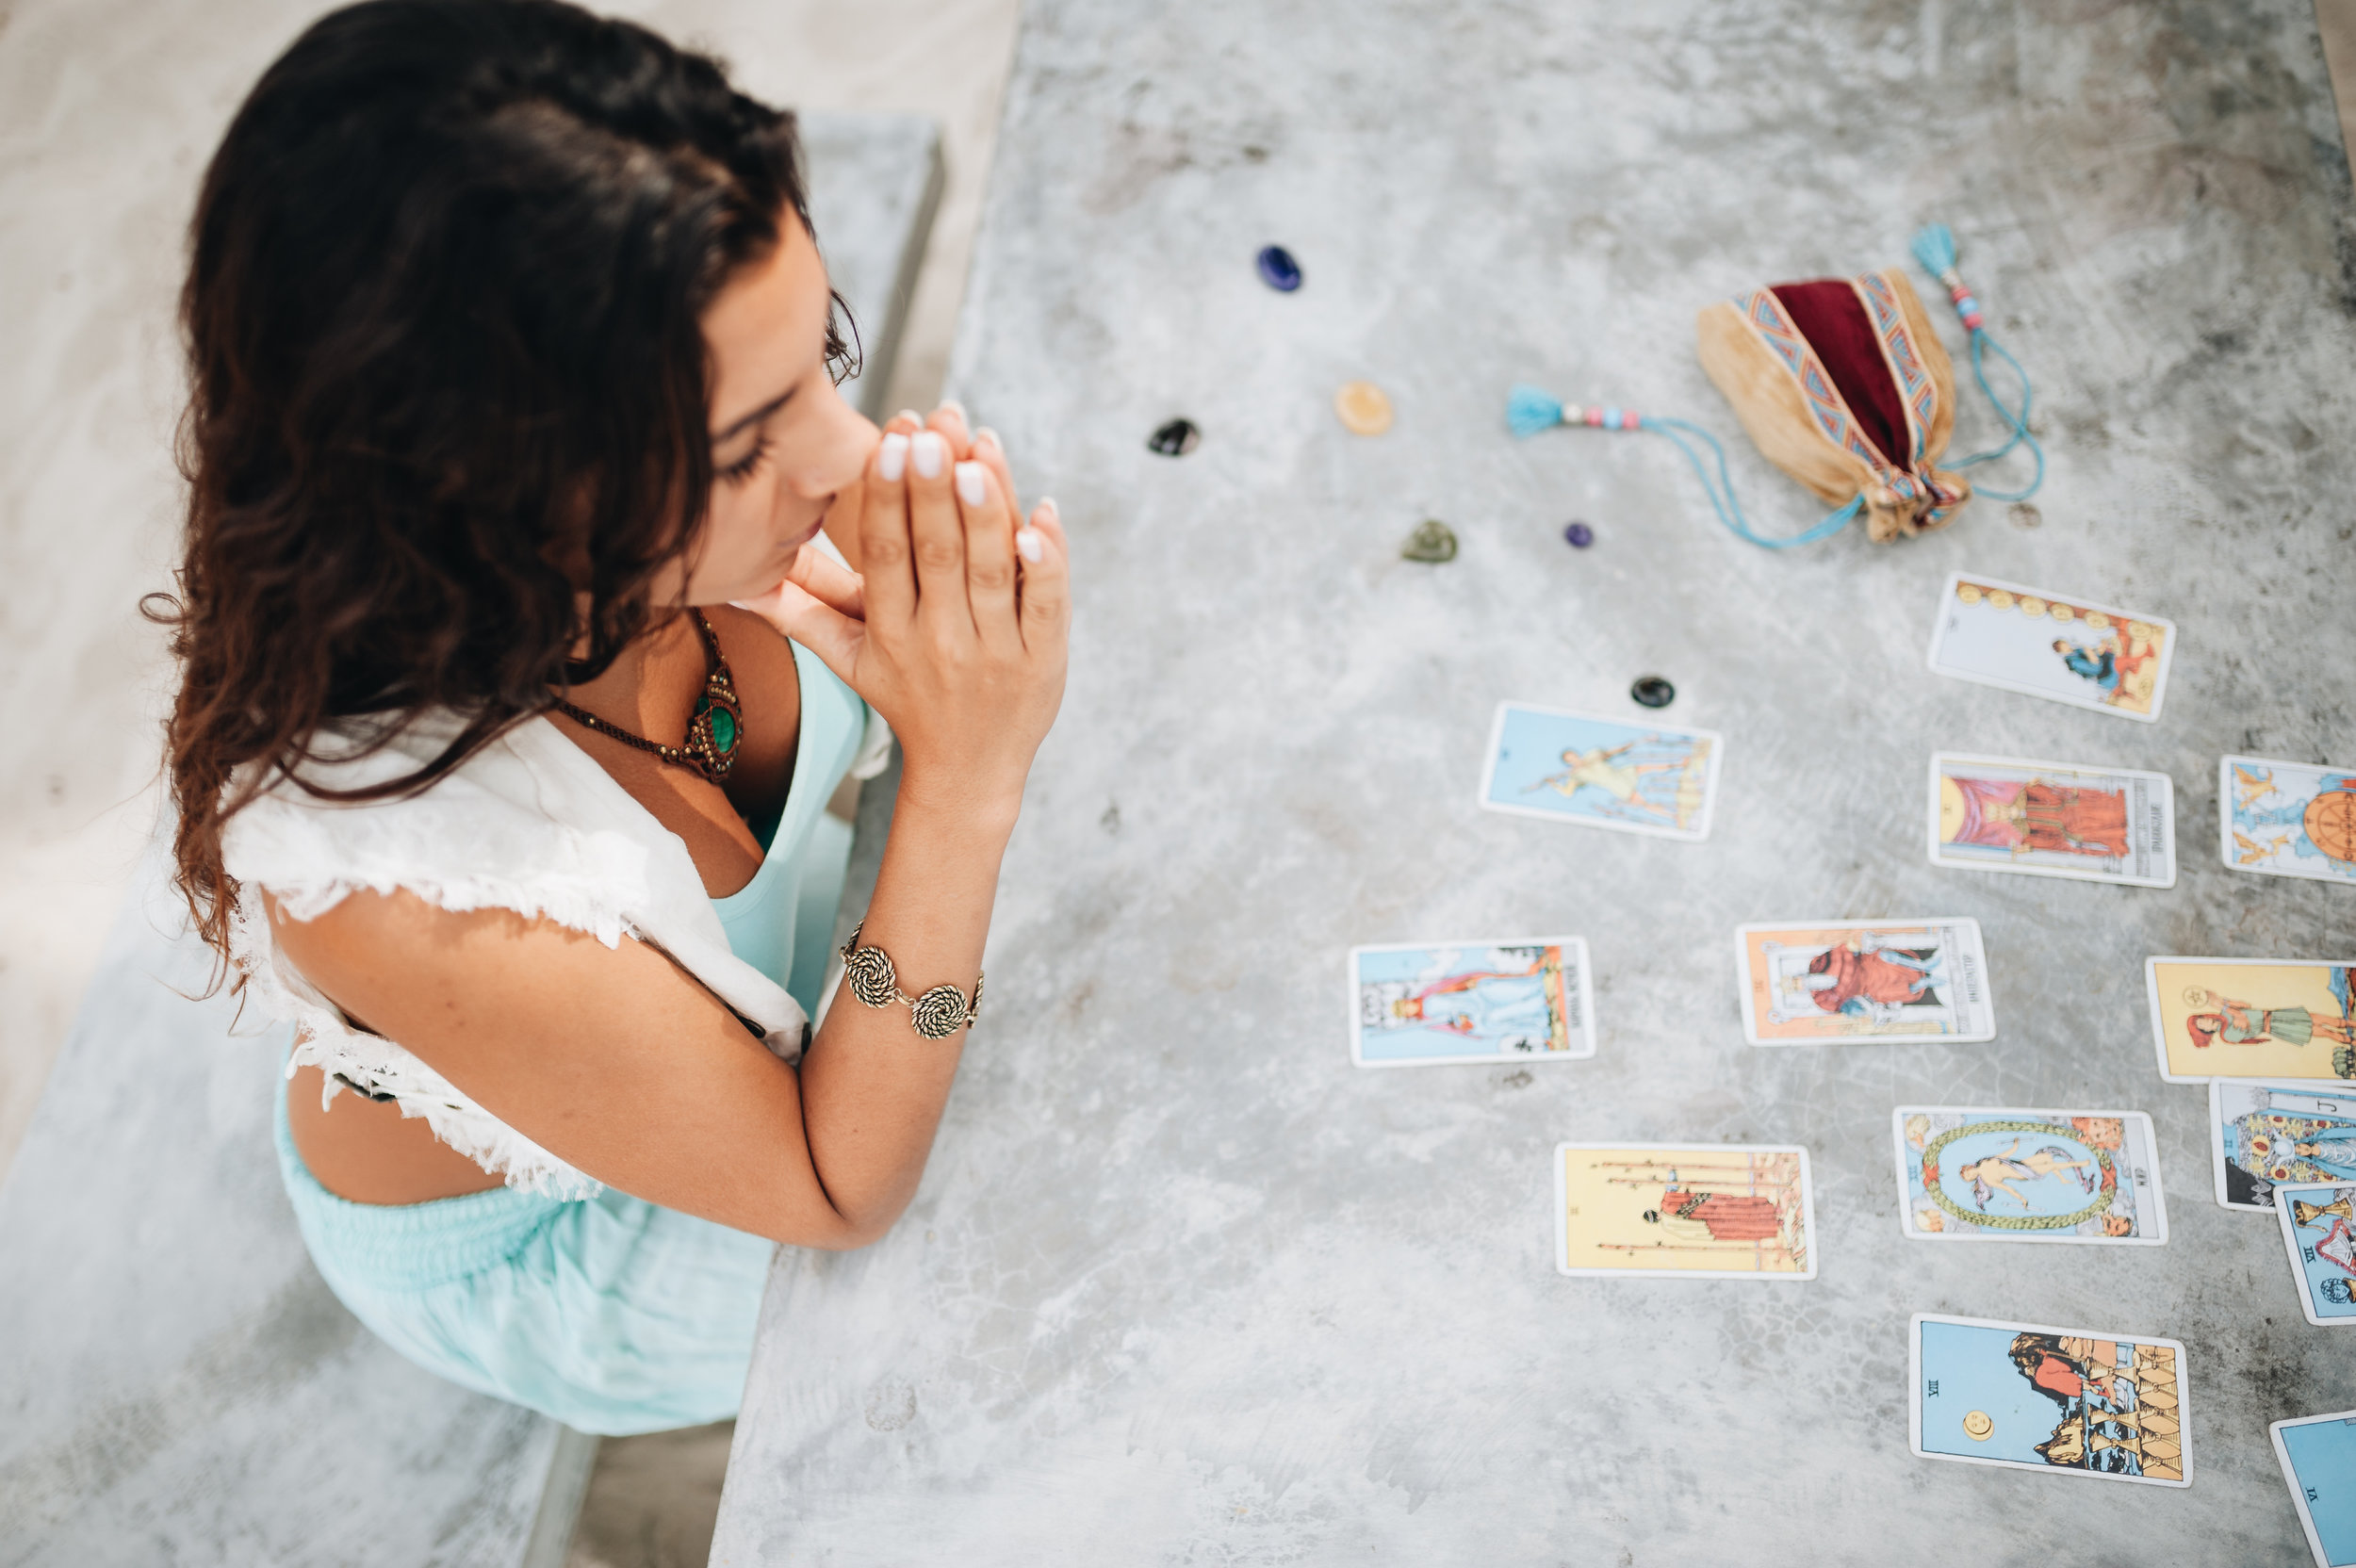 Spreads, Pulls and Dialogues - Six Proven Tarot Techniques